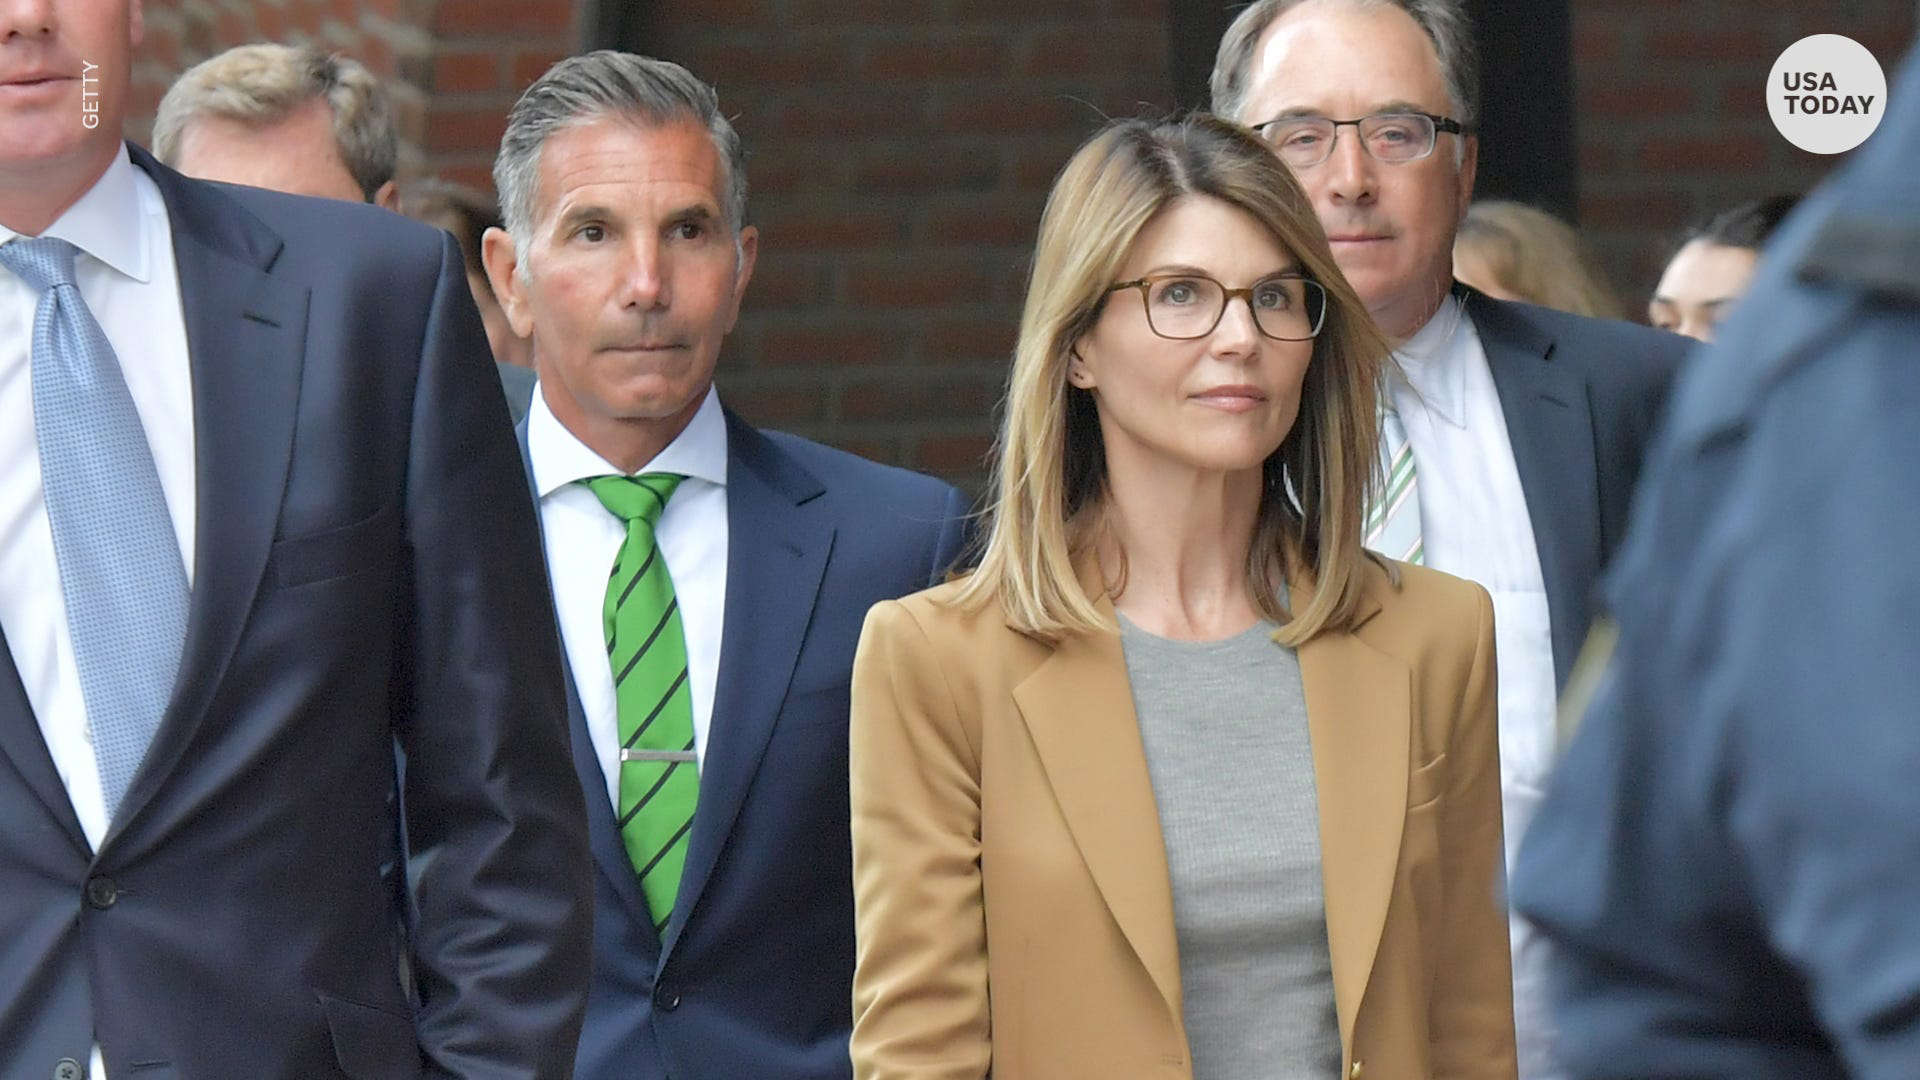 Lori Loughlin, Husband Mossimo Giannulli Sentenced to Prison in College Admissions Scandal BB14qbTA